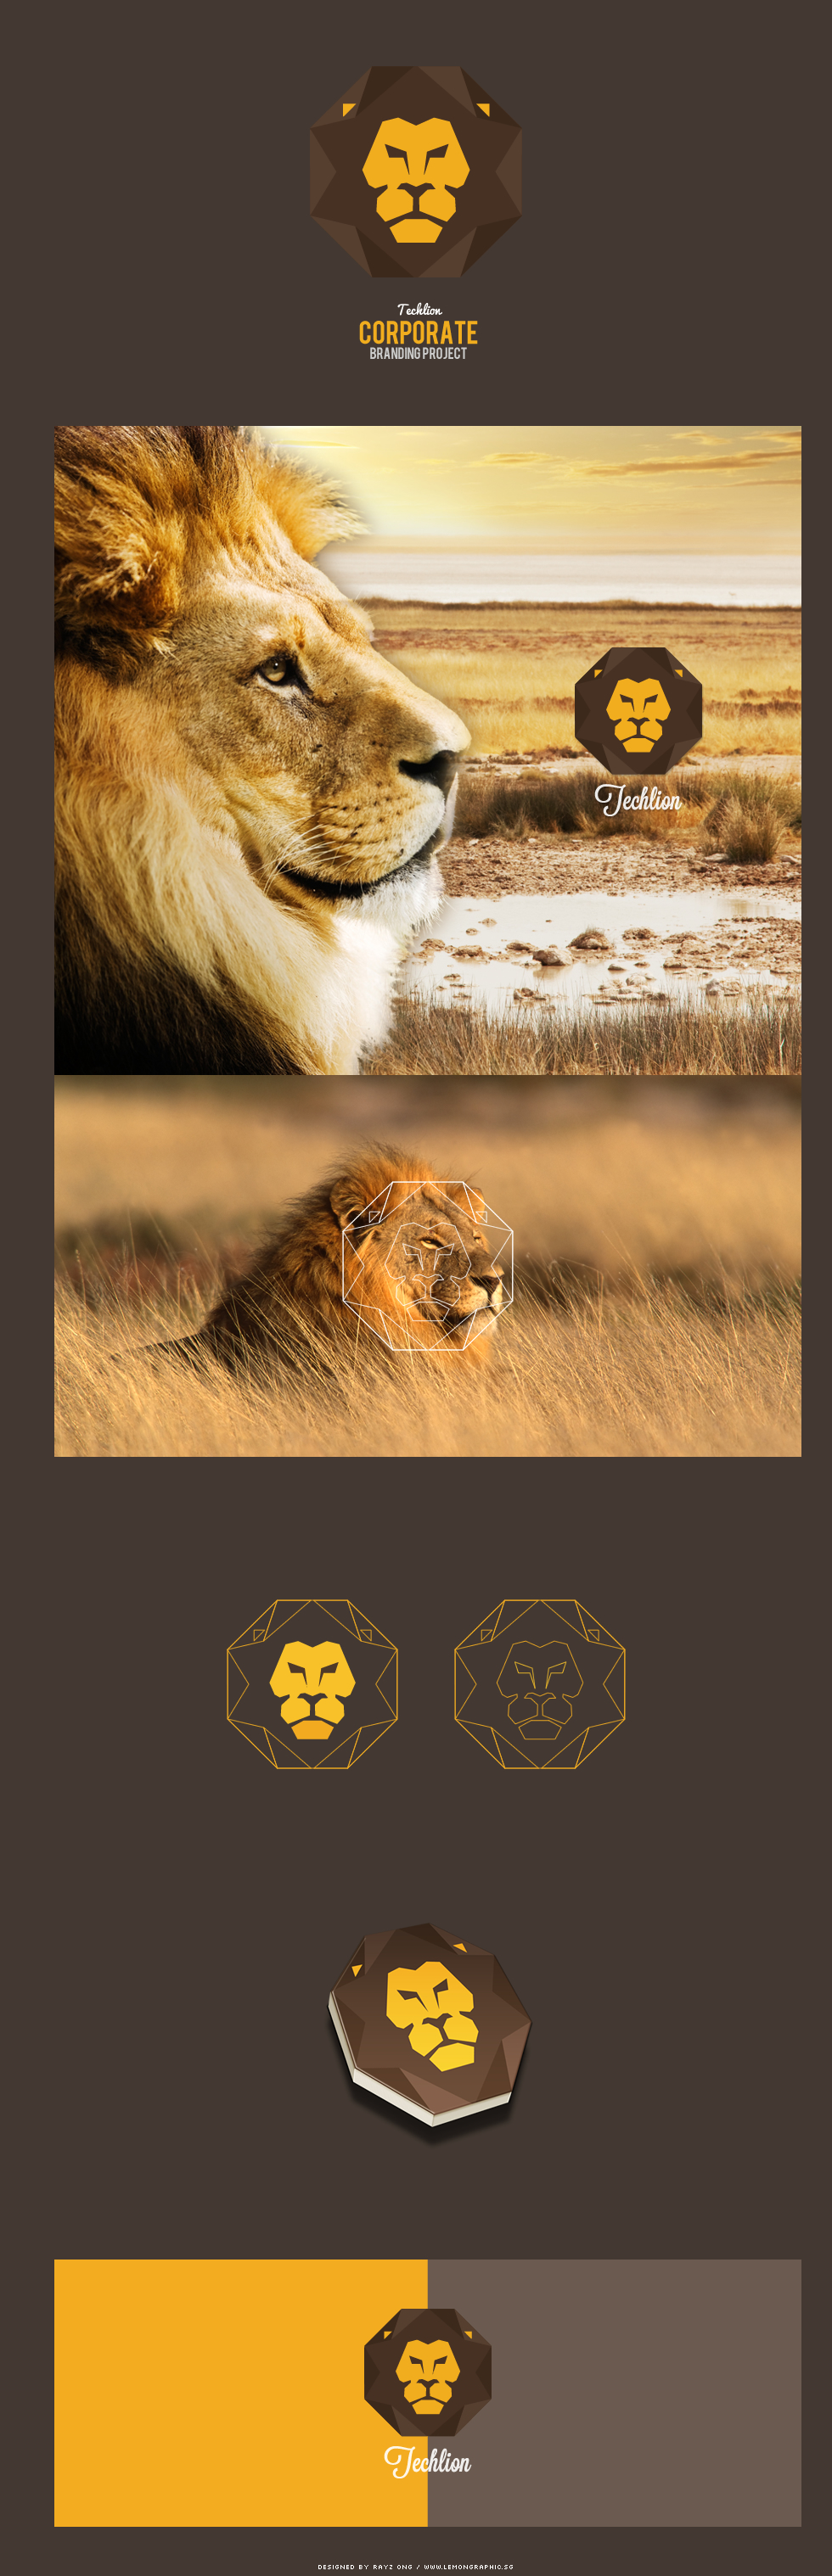 Techlion-corporate-branding-project-01